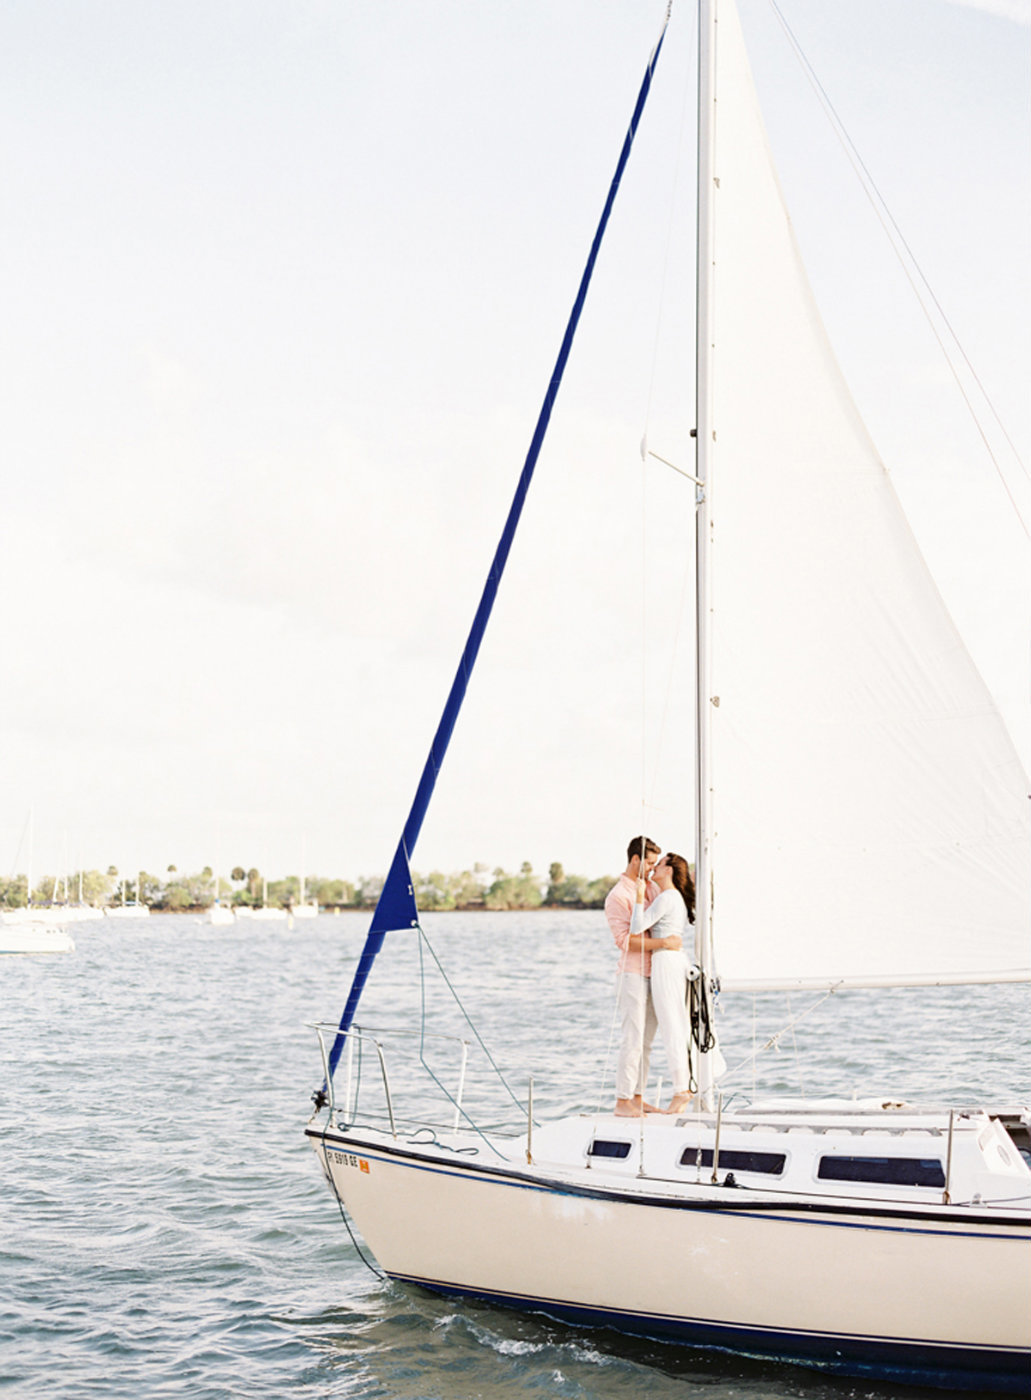 kayla_jon_vizcaya_sailboat_engagement_melanie_gabrielle_photography_47